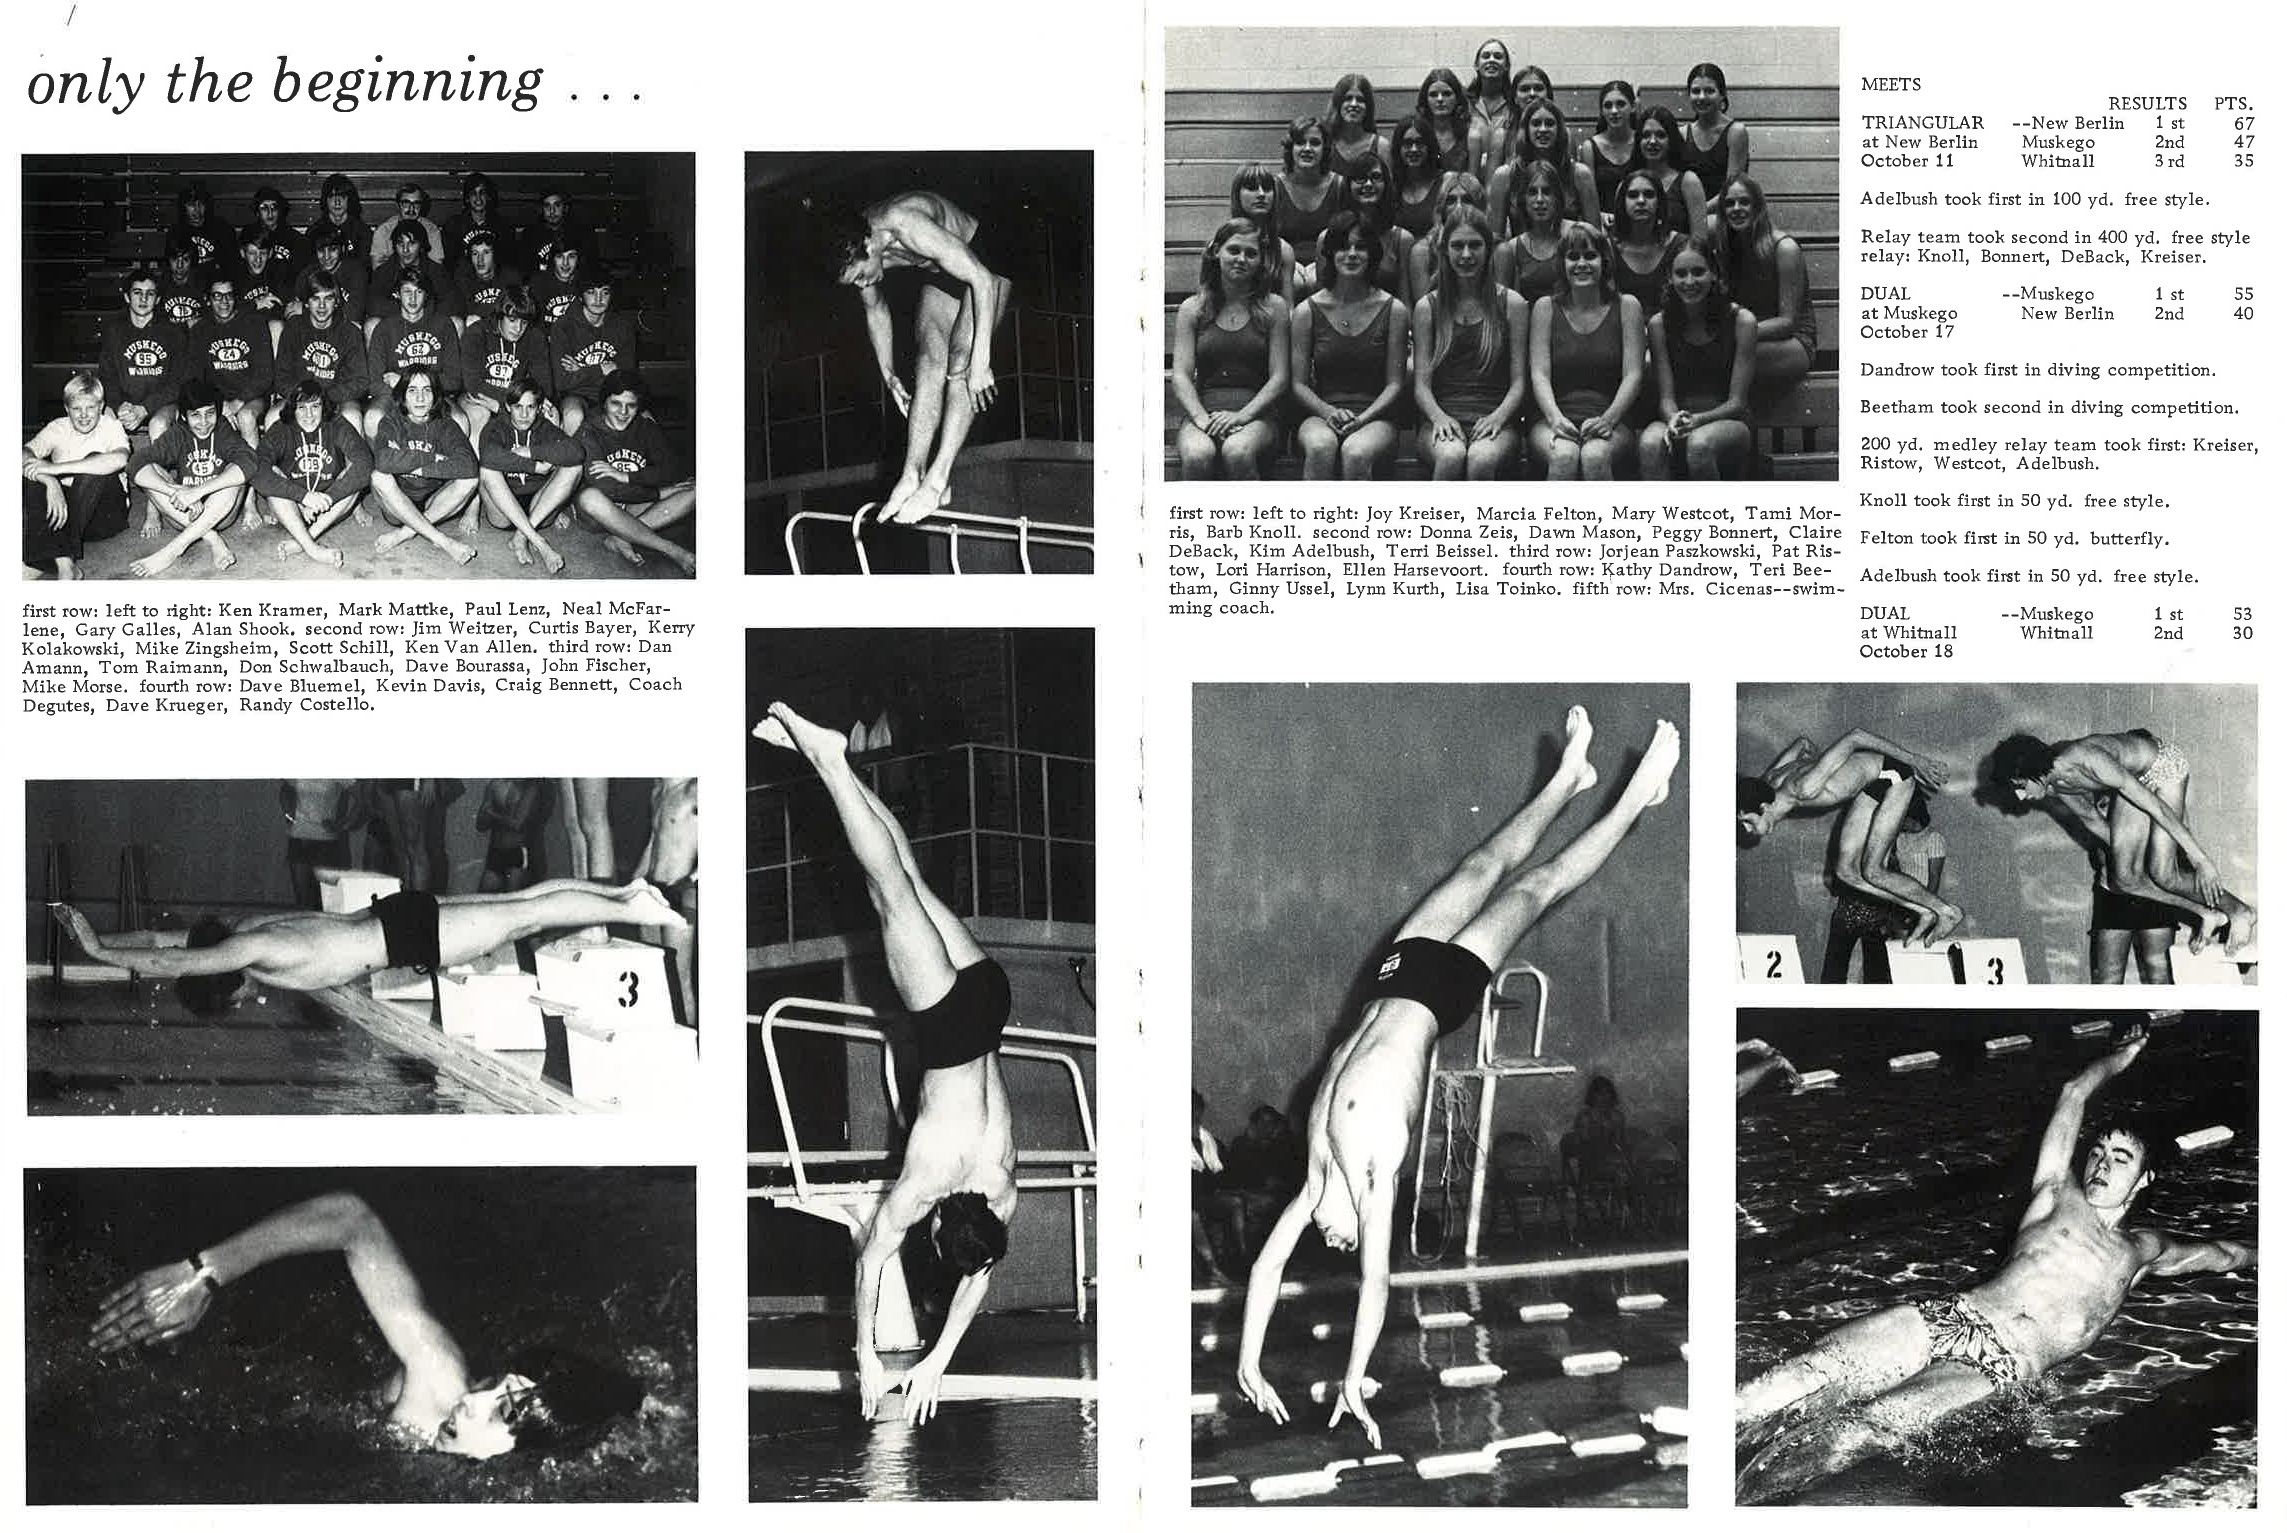 1973_Yearbook_146-147.jpg